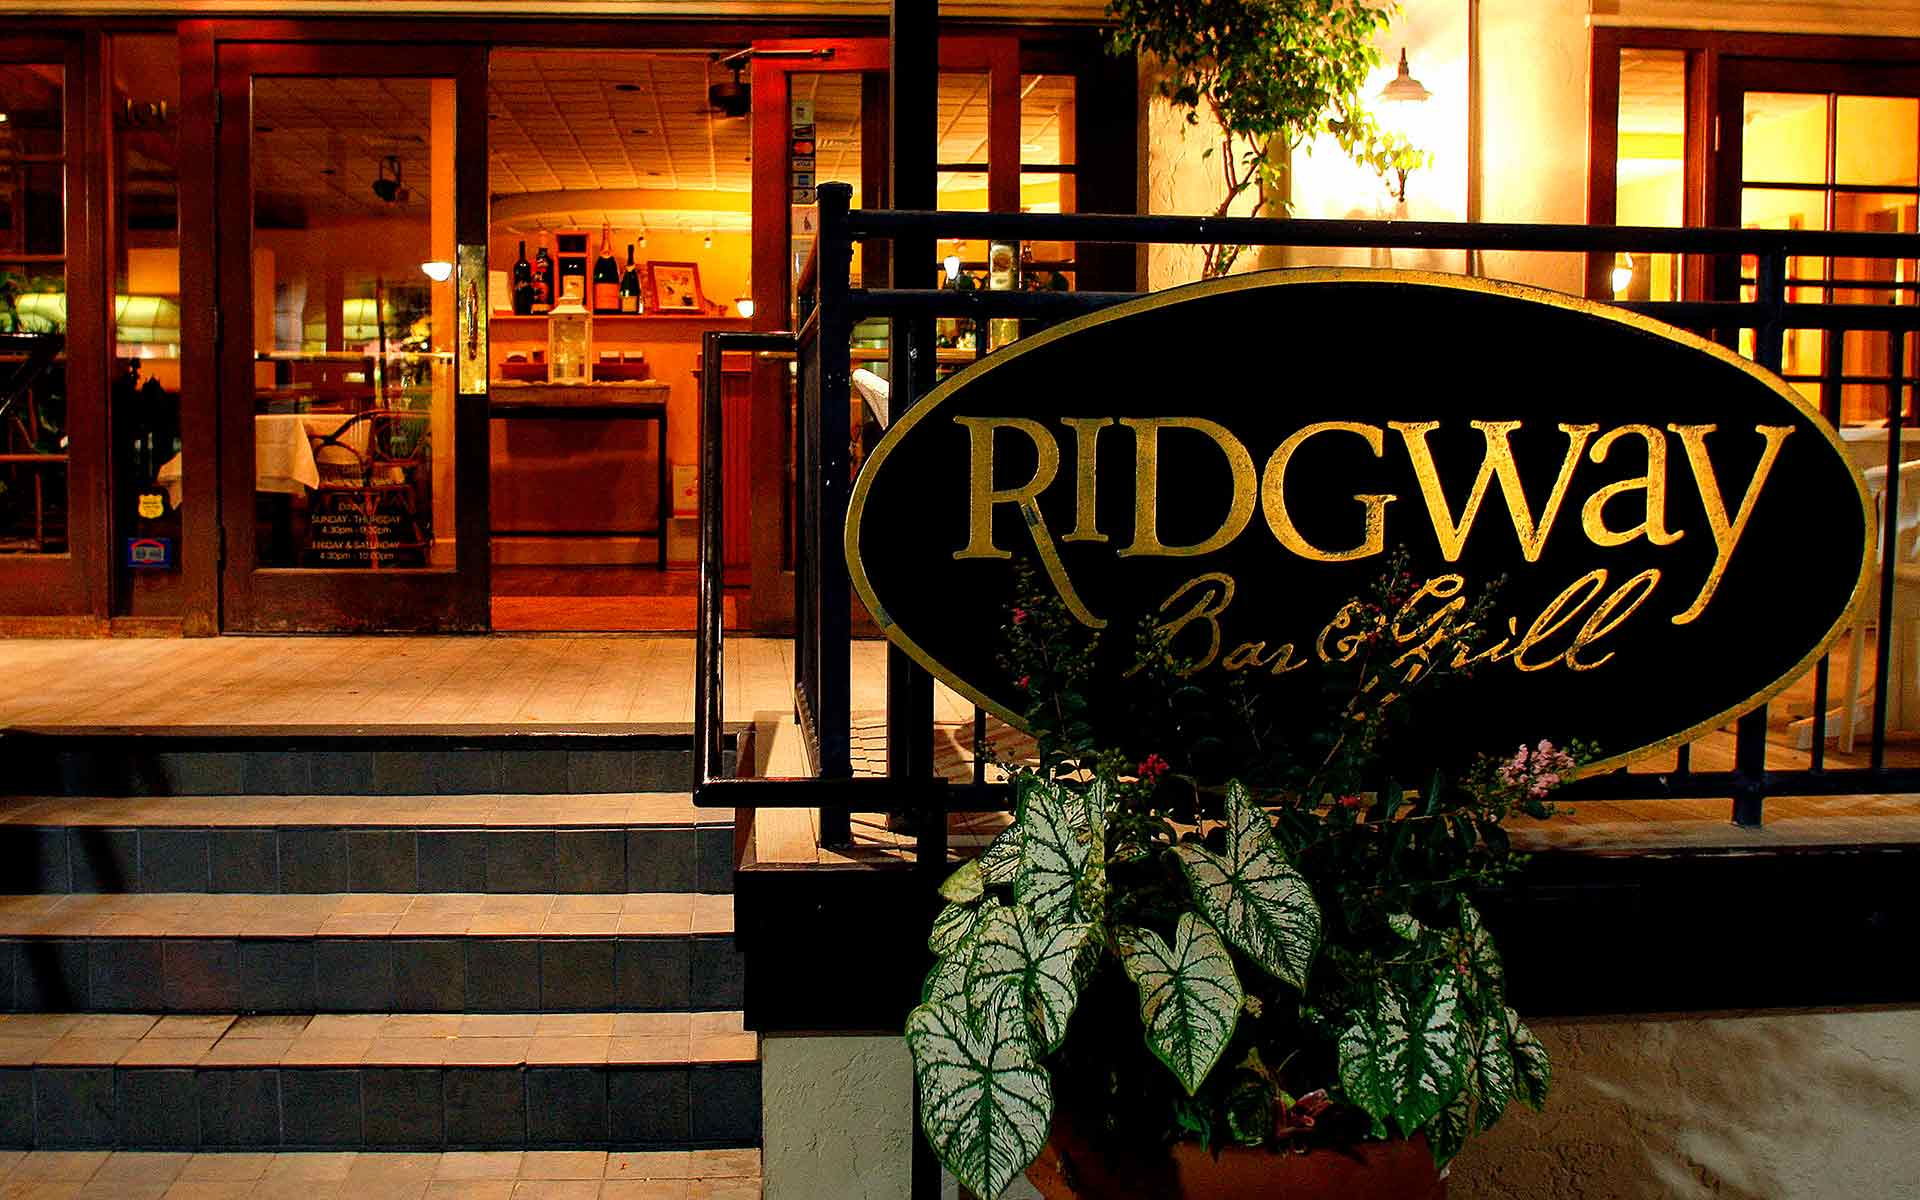 Ridgway Bar & Grill exterior and sign